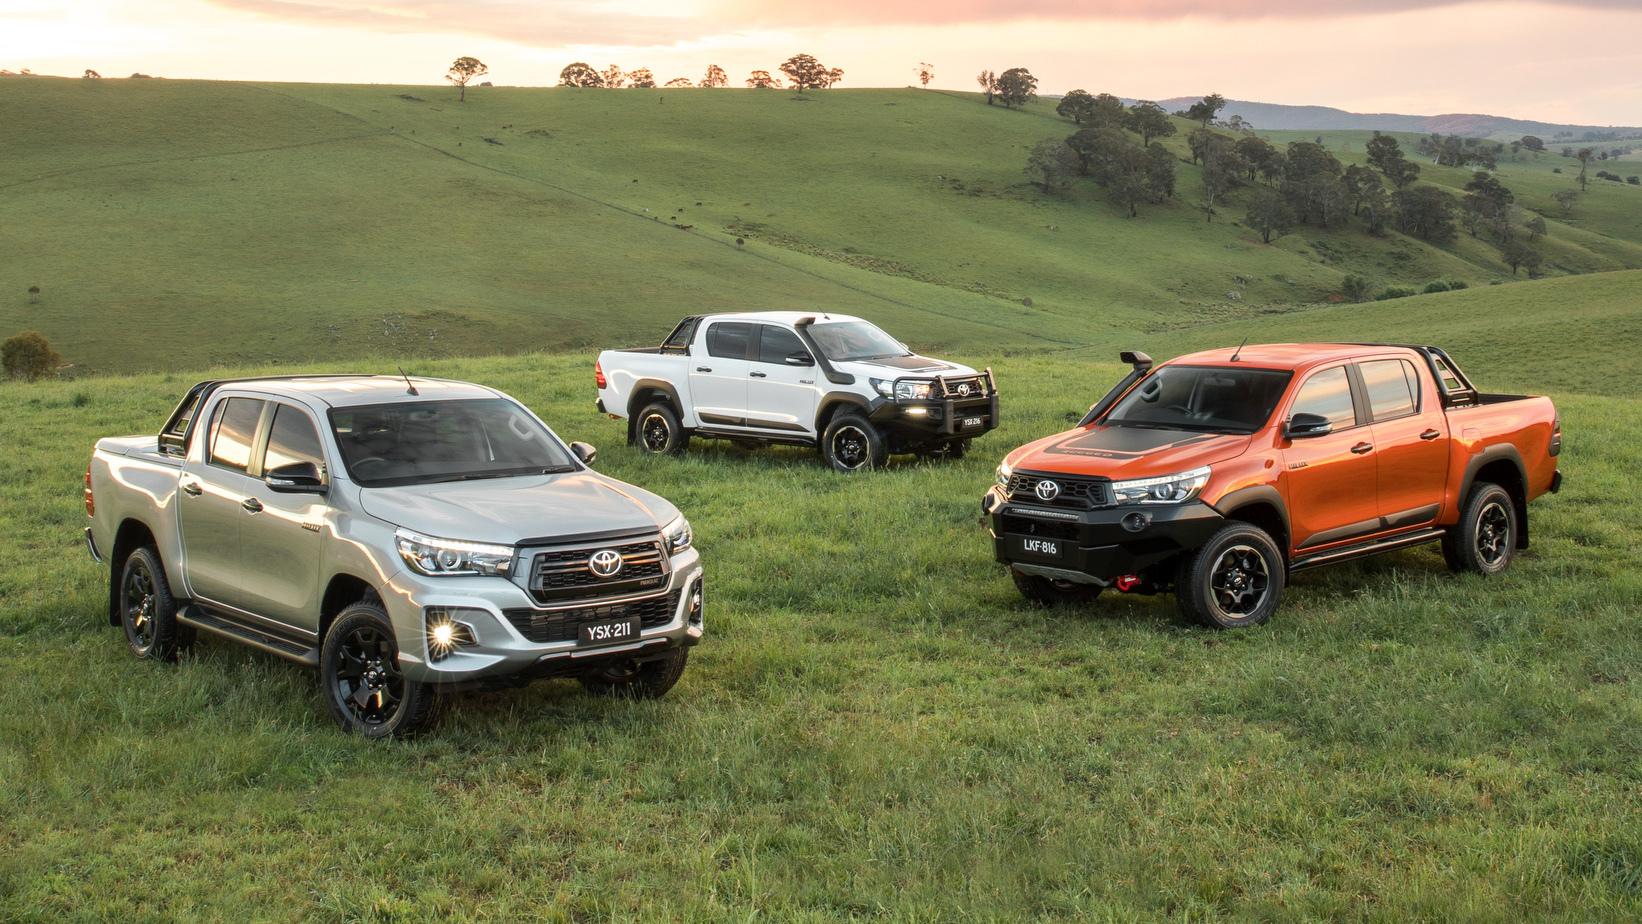 L-R Toyota HiLux Rogue, Rugged, Rugged X